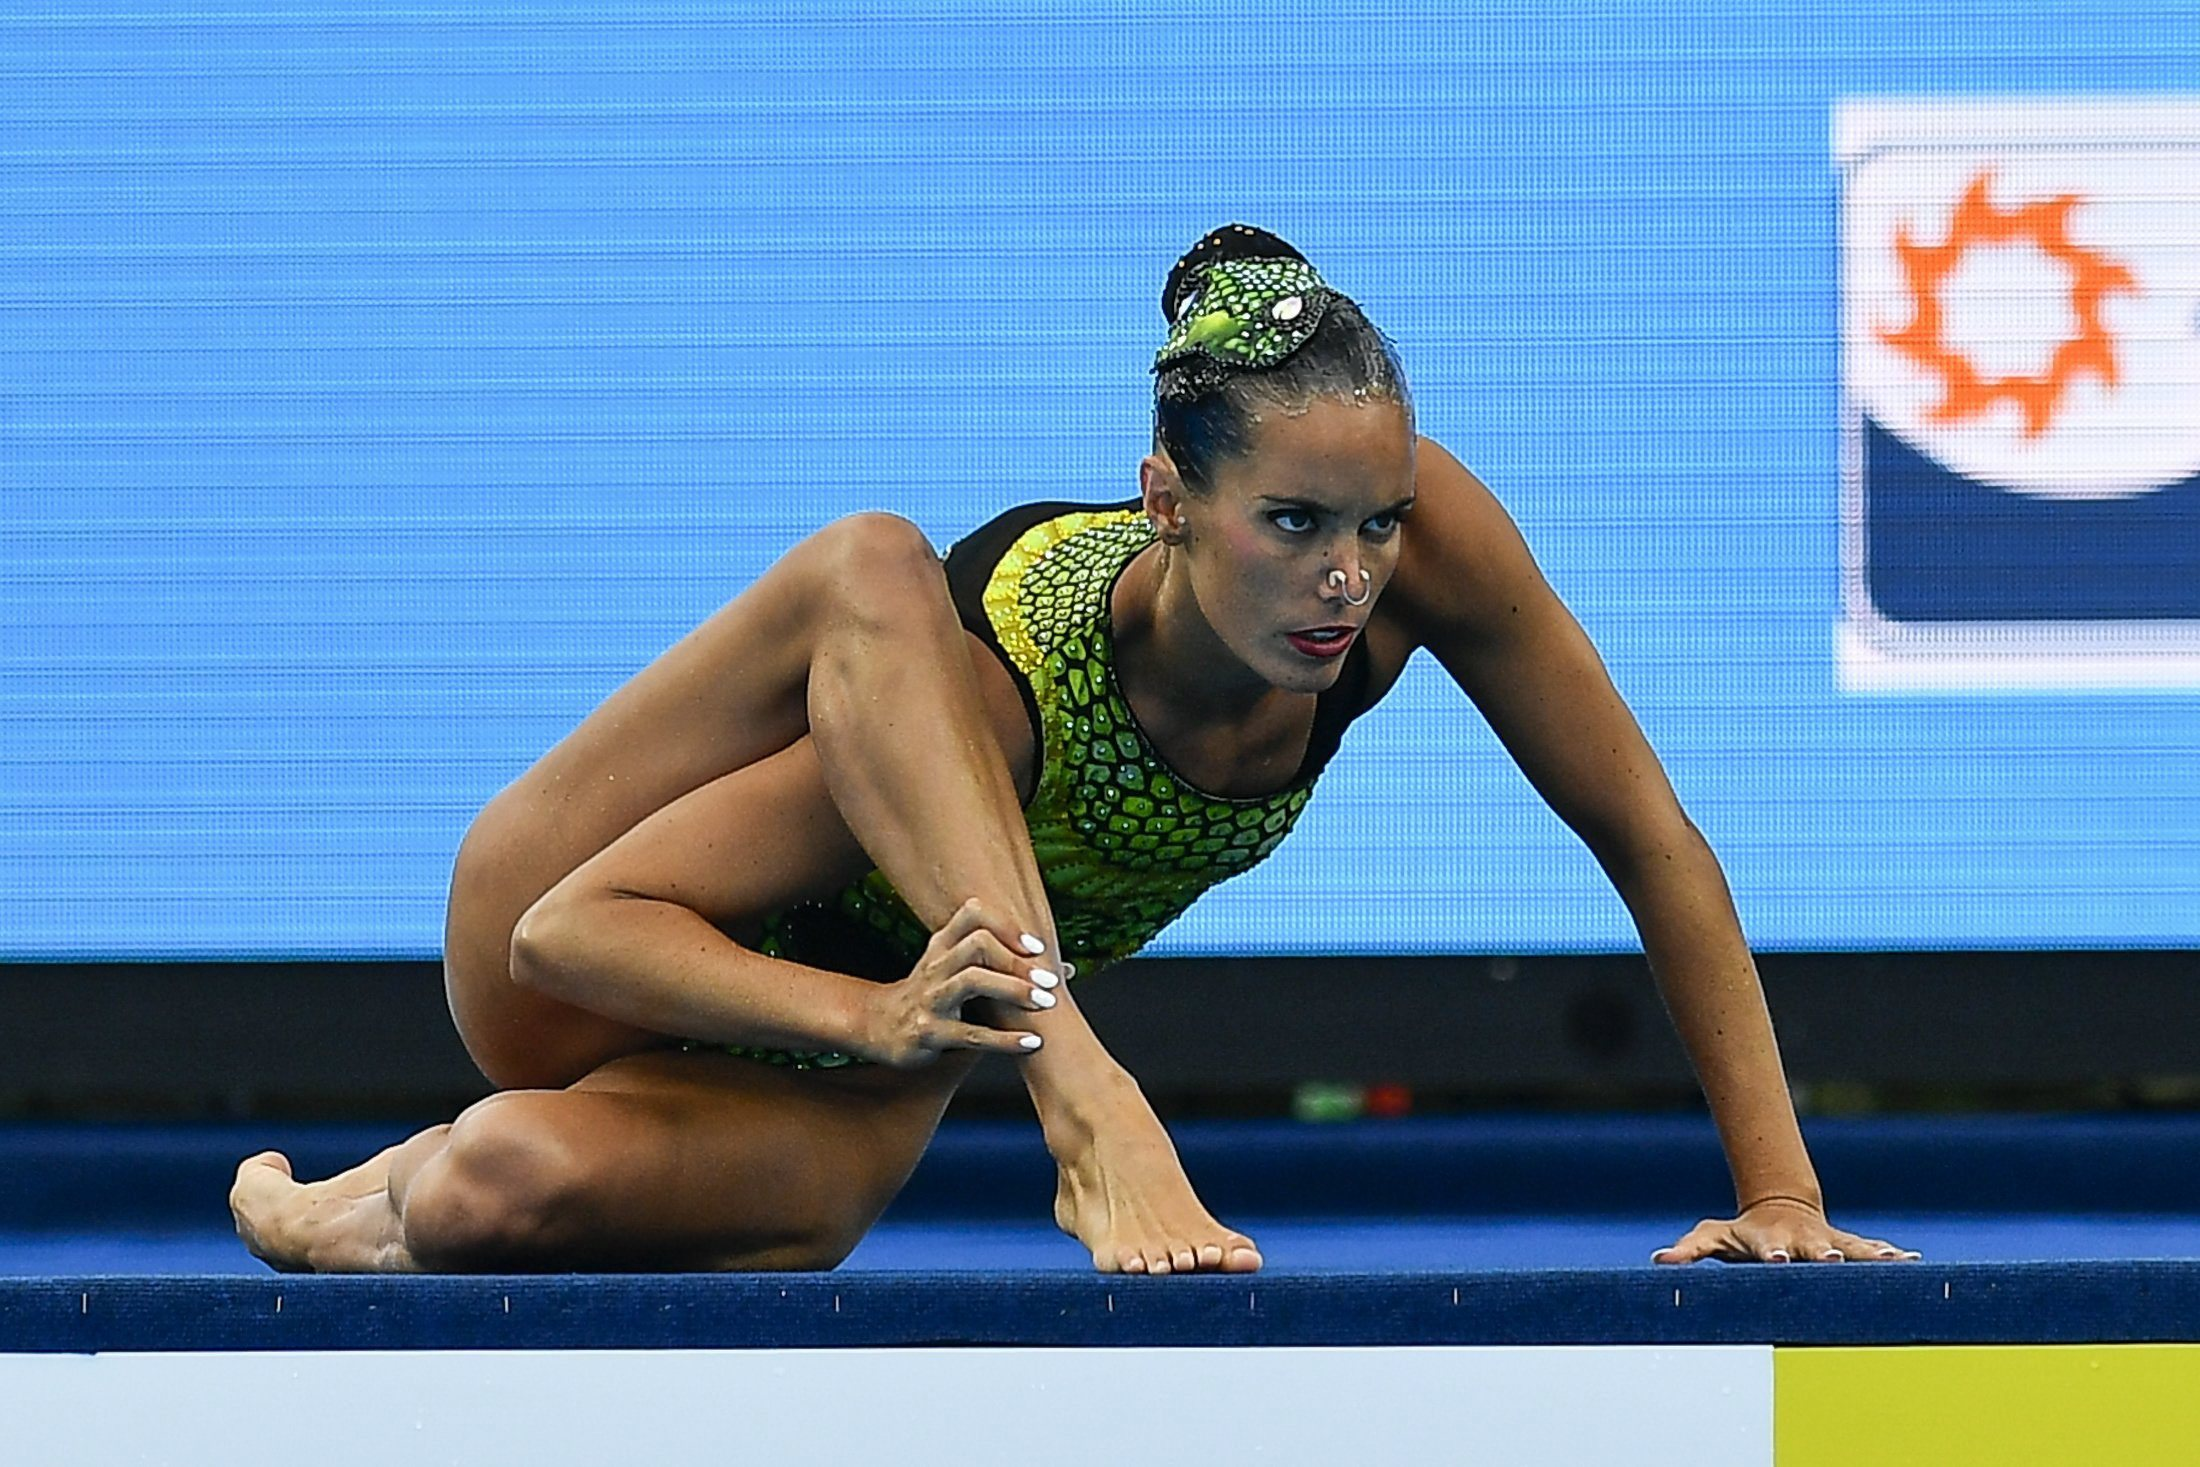 Ona Carbonell of Spain performs during the women's Solo Technical event of the FINA Swimming World Championships 2017 in the City Park, in Budapest, Hungary, Friday, July 14, 2017. (Zsolt Czegledi/MTI via AP)